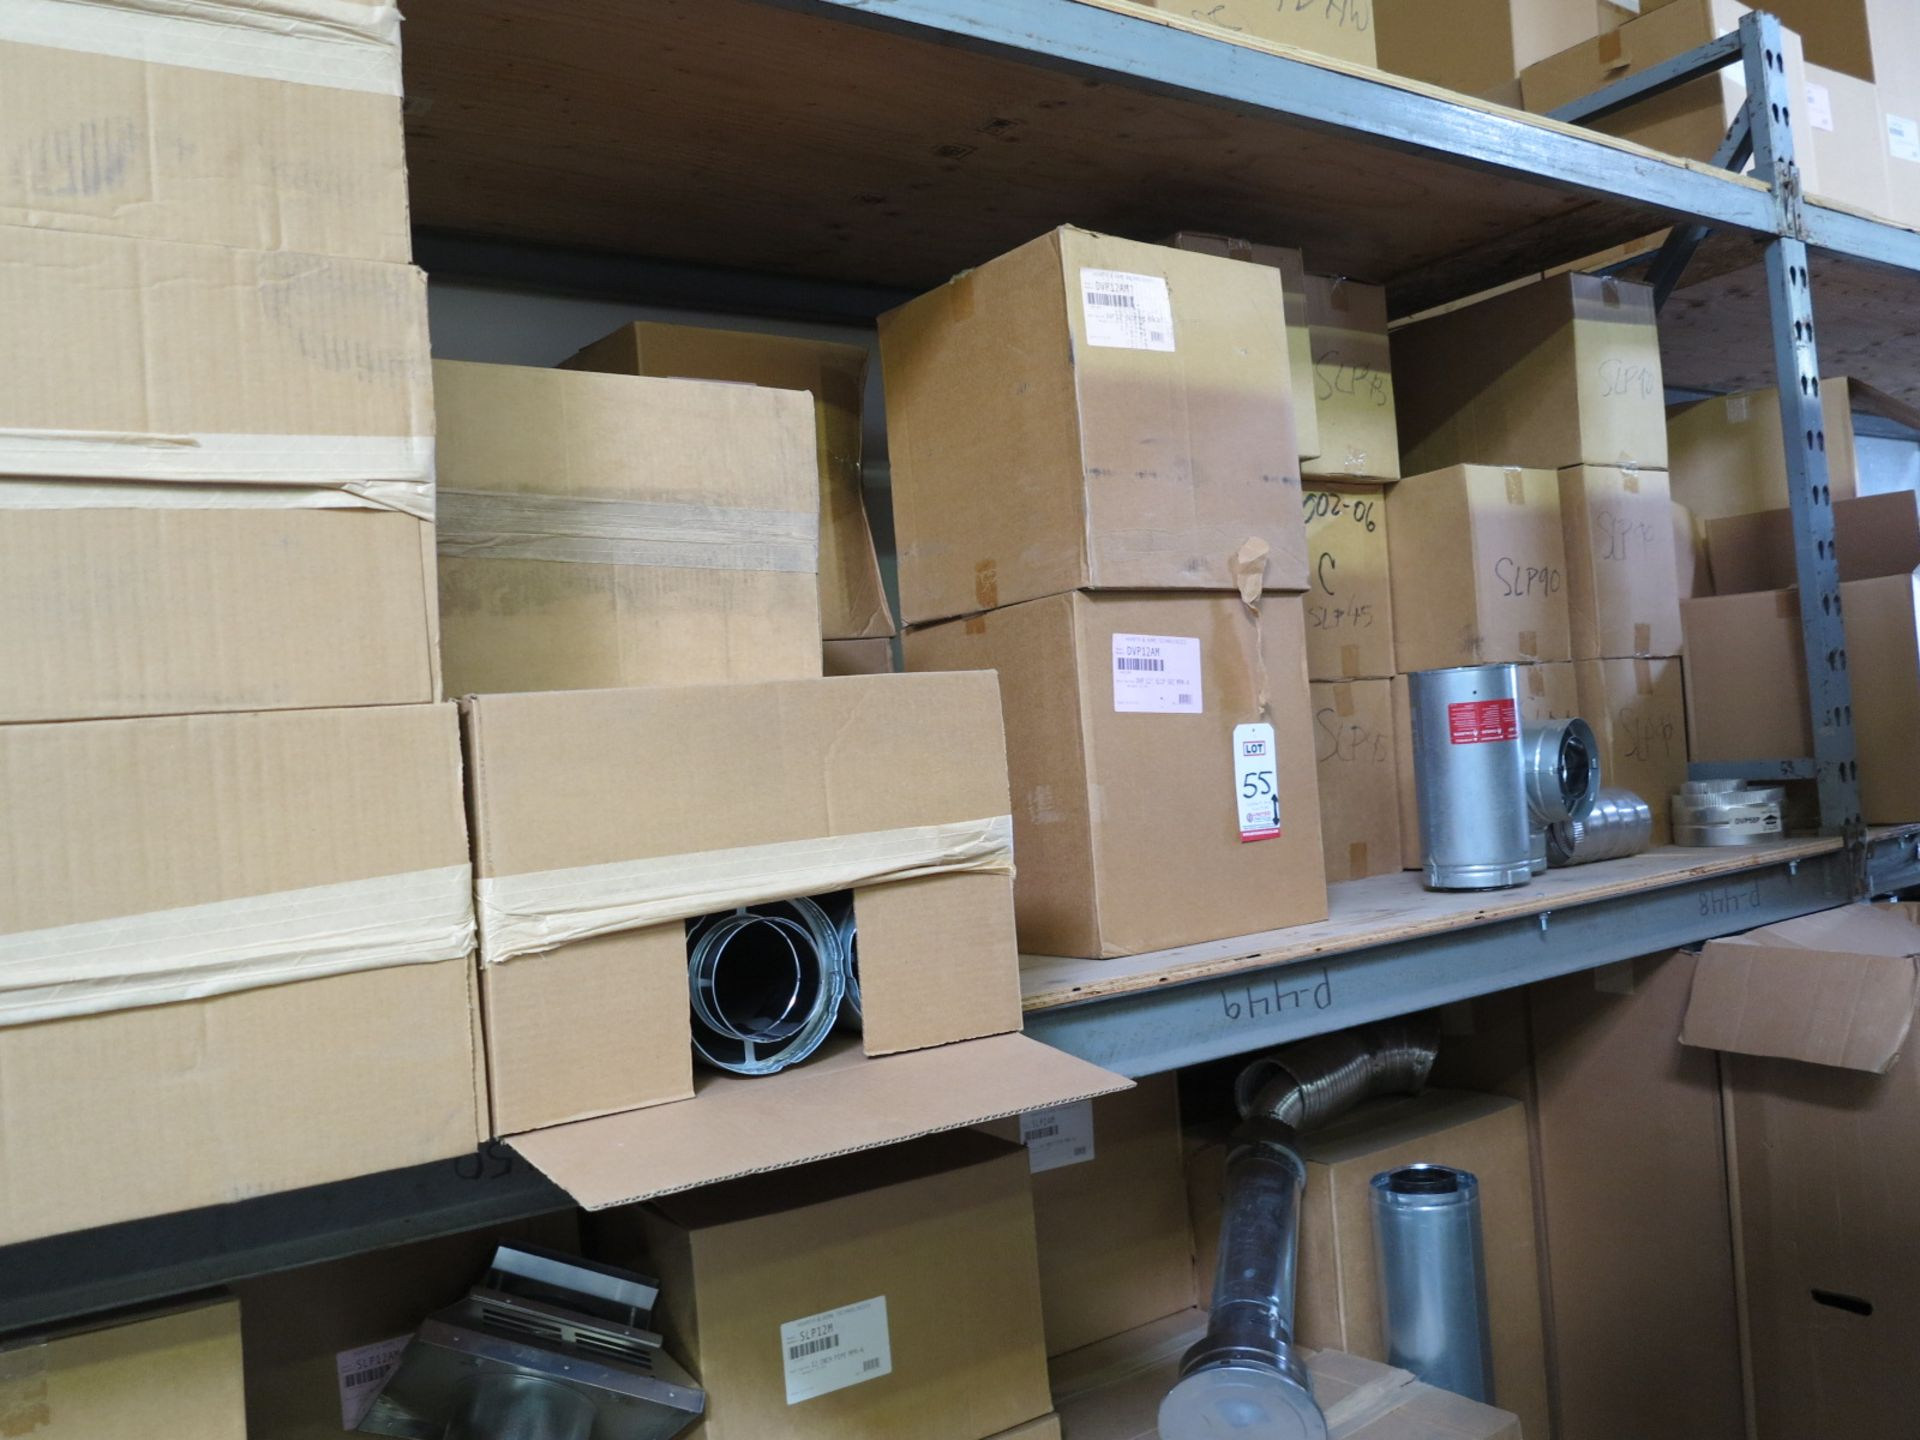 LOT - CONTENTS OF (1) SECTION OF PALLET RACKING, MISC STOVE PARTS - Image 3 of 4